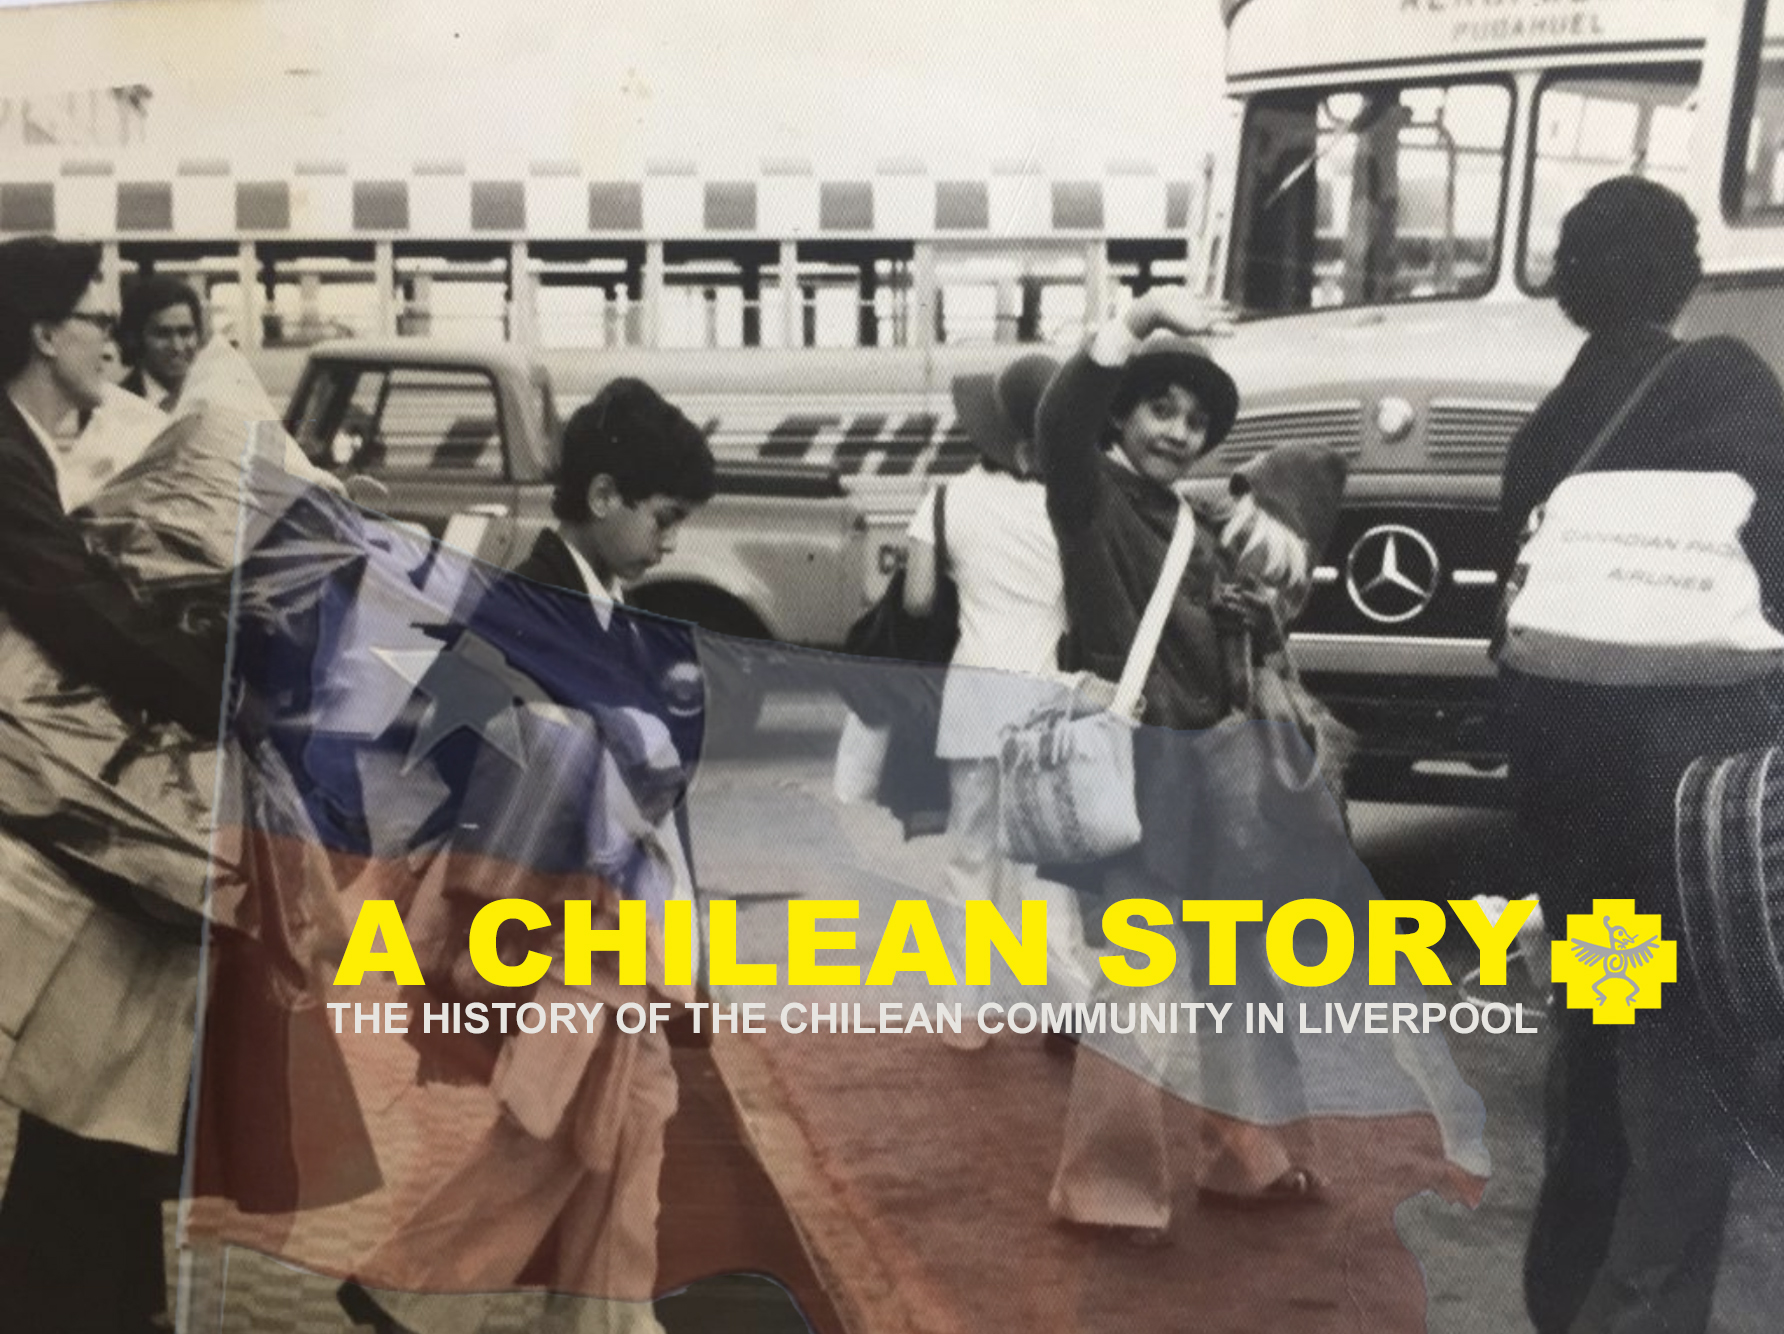 A Chilean story